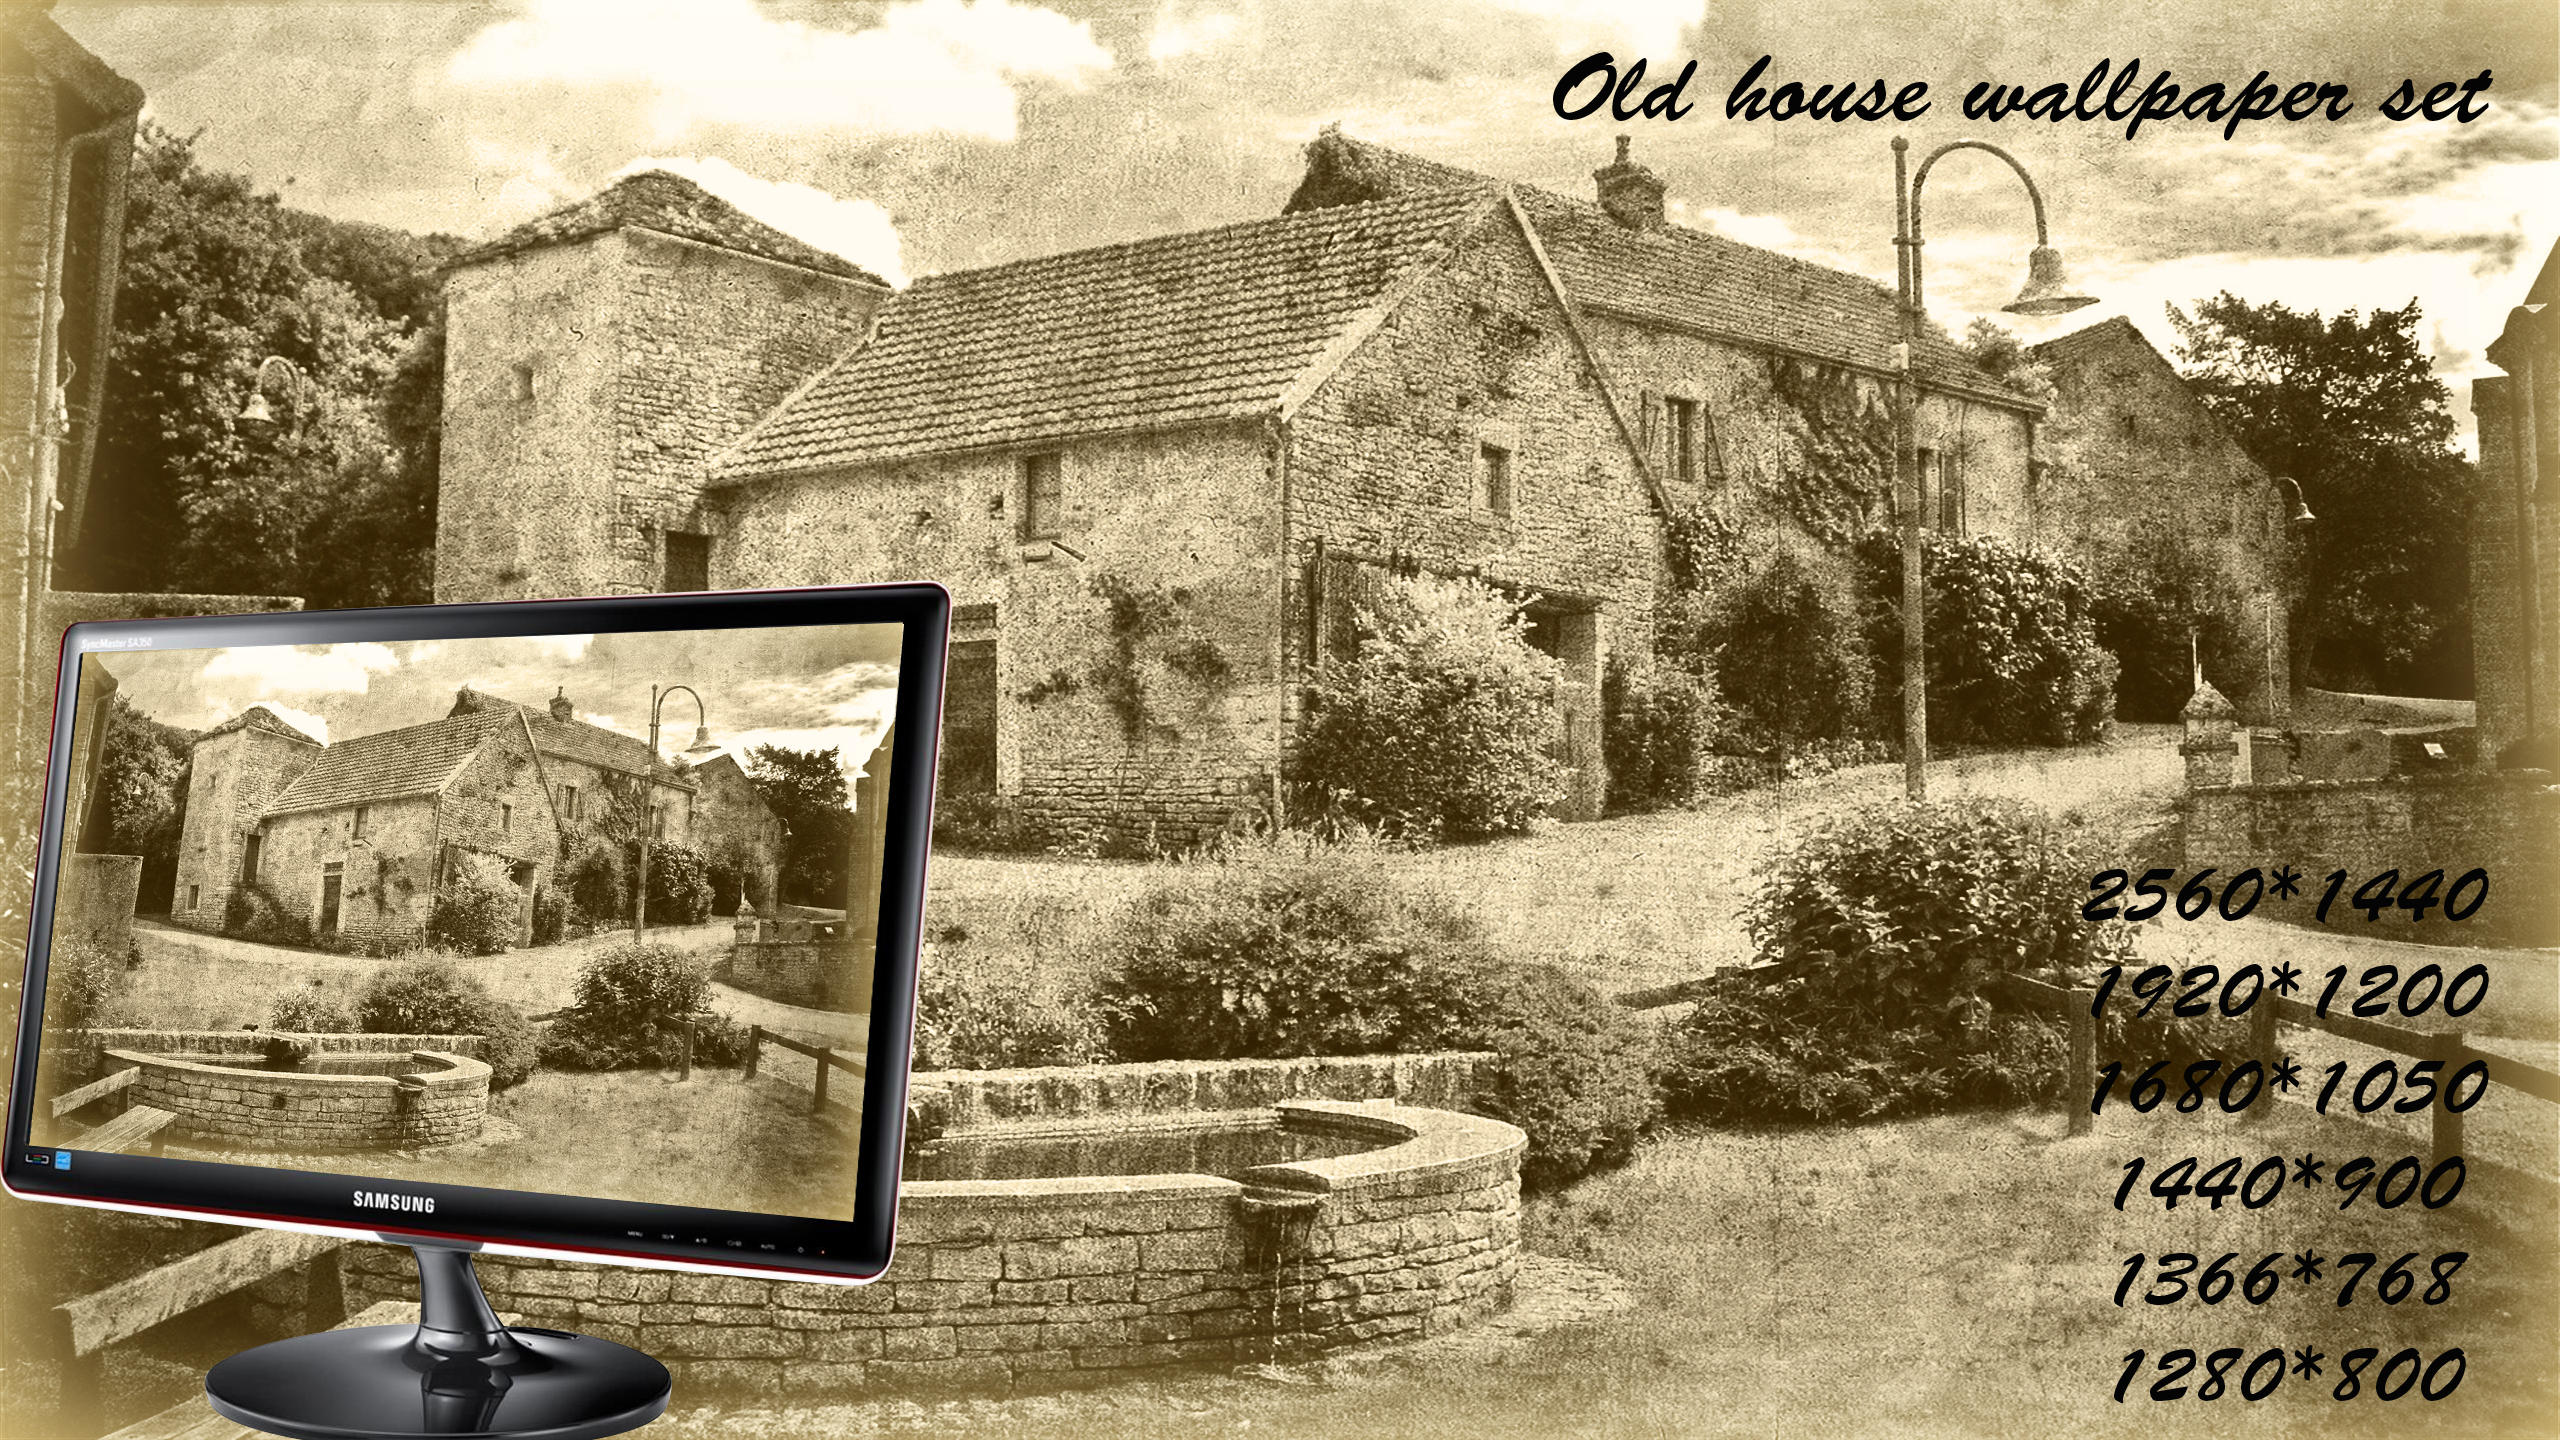 Old house wallpaper by qamu74 on deviantart for Classic house wallpaper